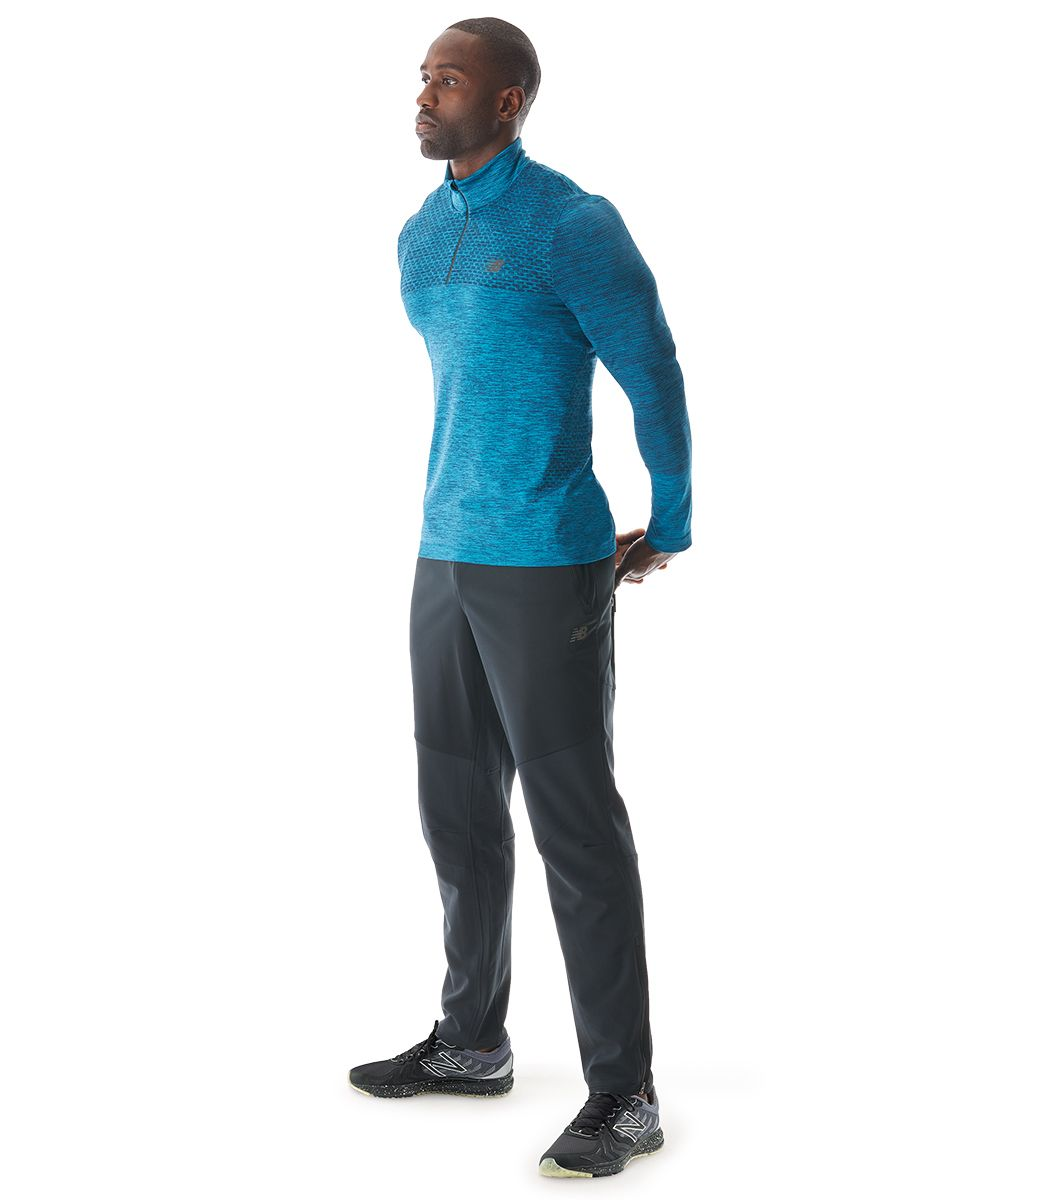 New Balance Mens November Pace Protect Pack and Seamless with NB Heat,